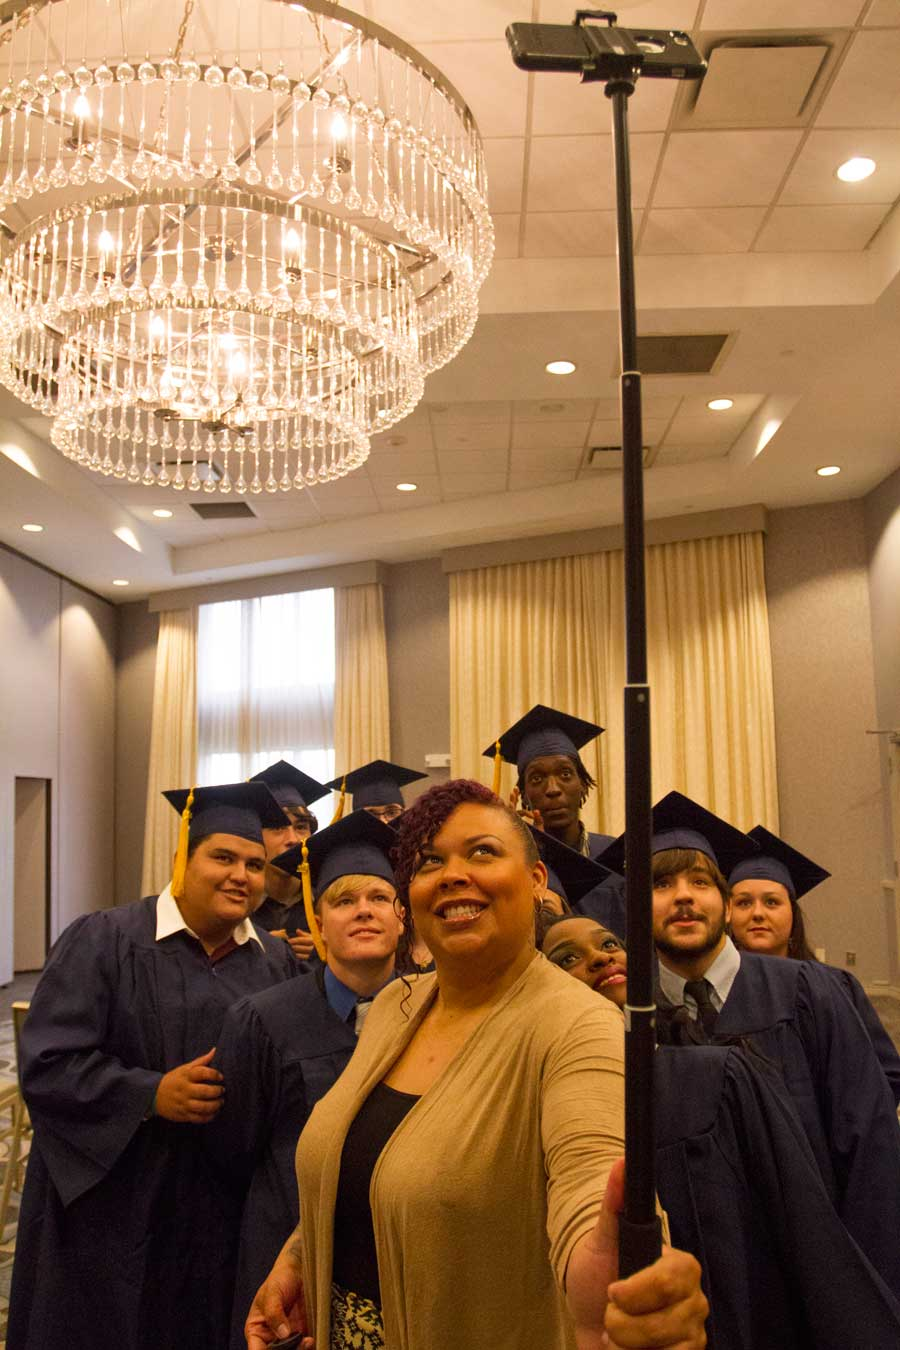 JCFA graduates earn a high school diploma, not a GED.